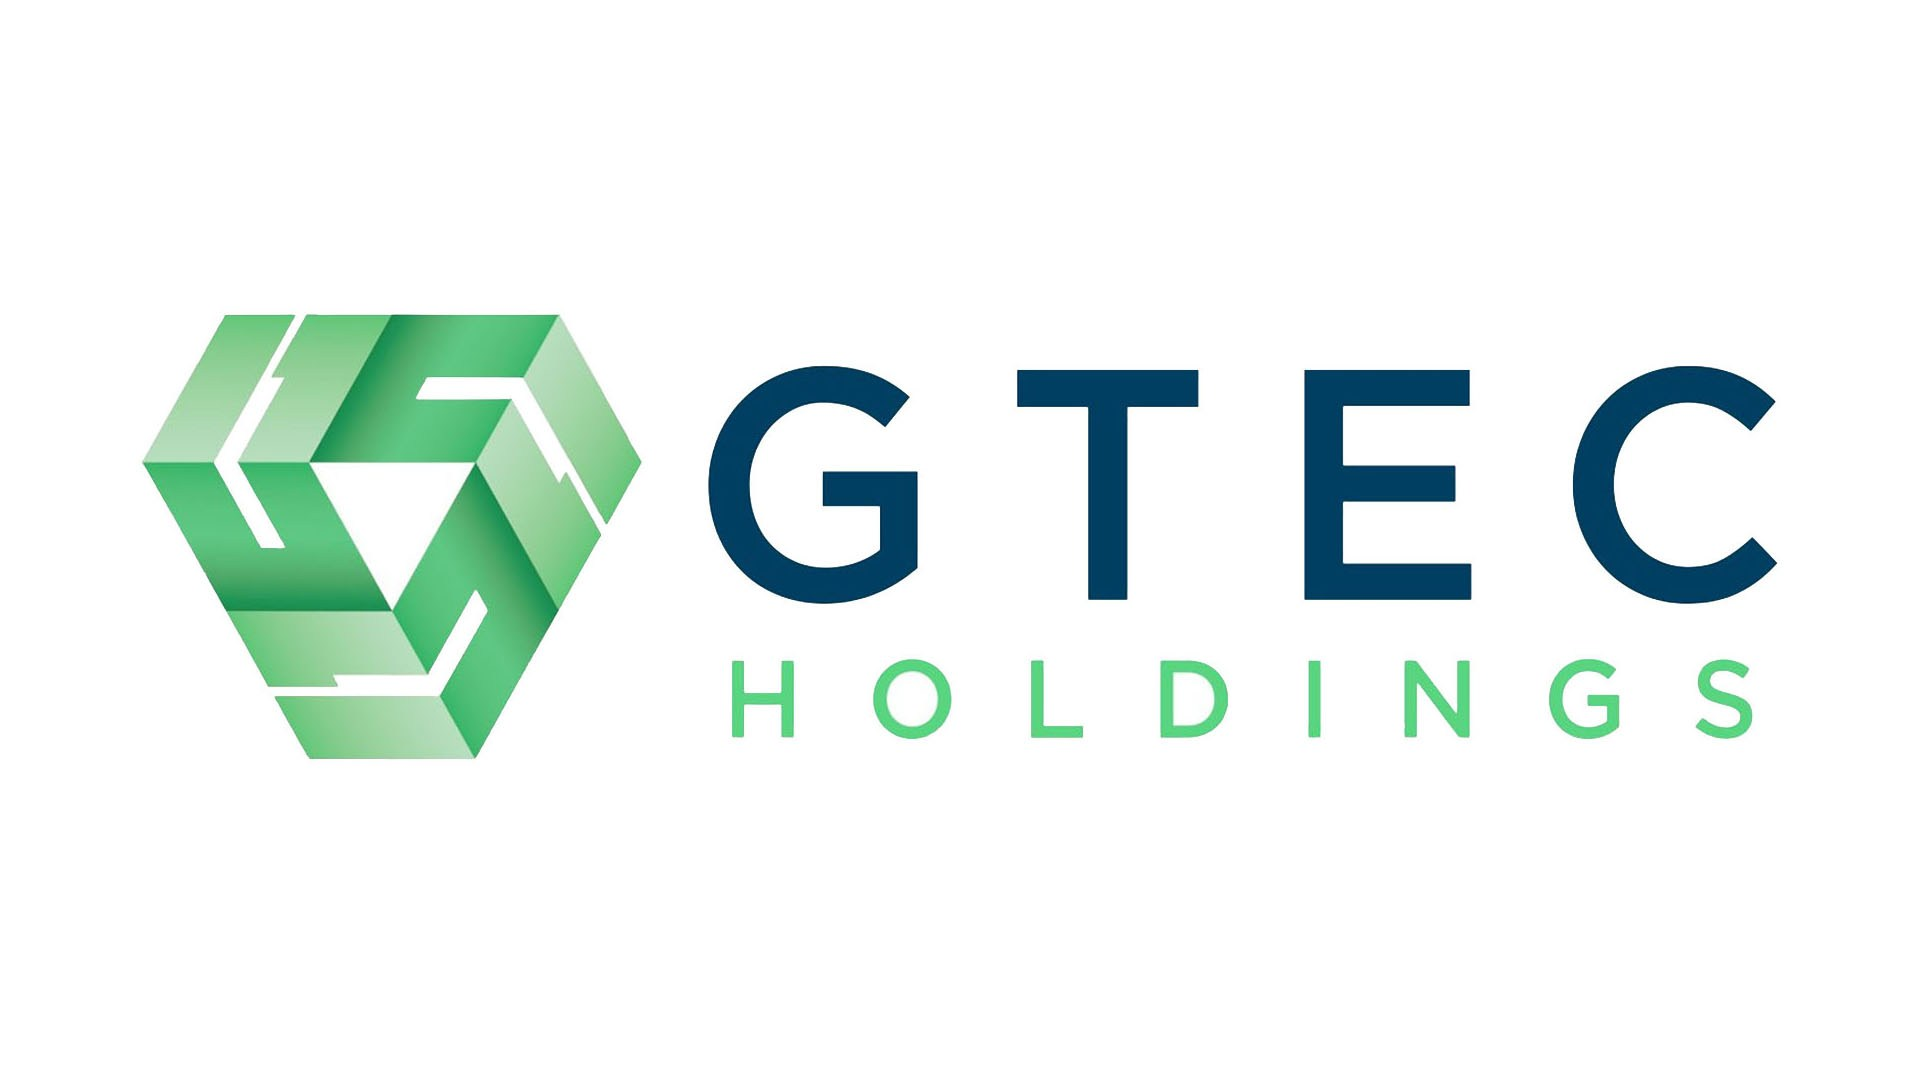 GTEC Holdings Ltd